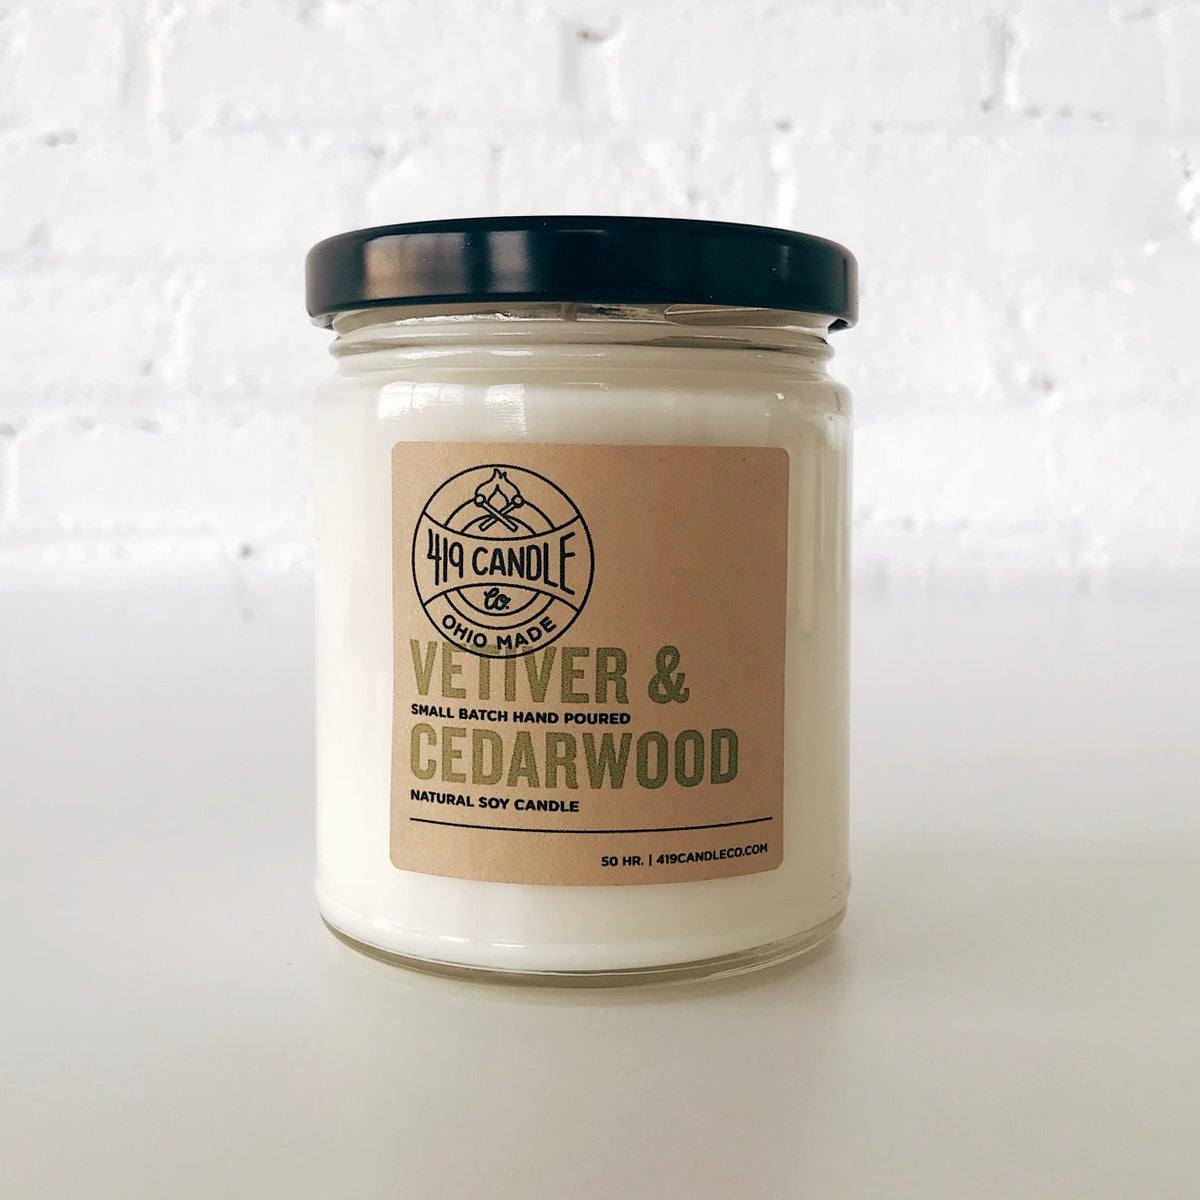 Image of Vetiver & Cedarwood